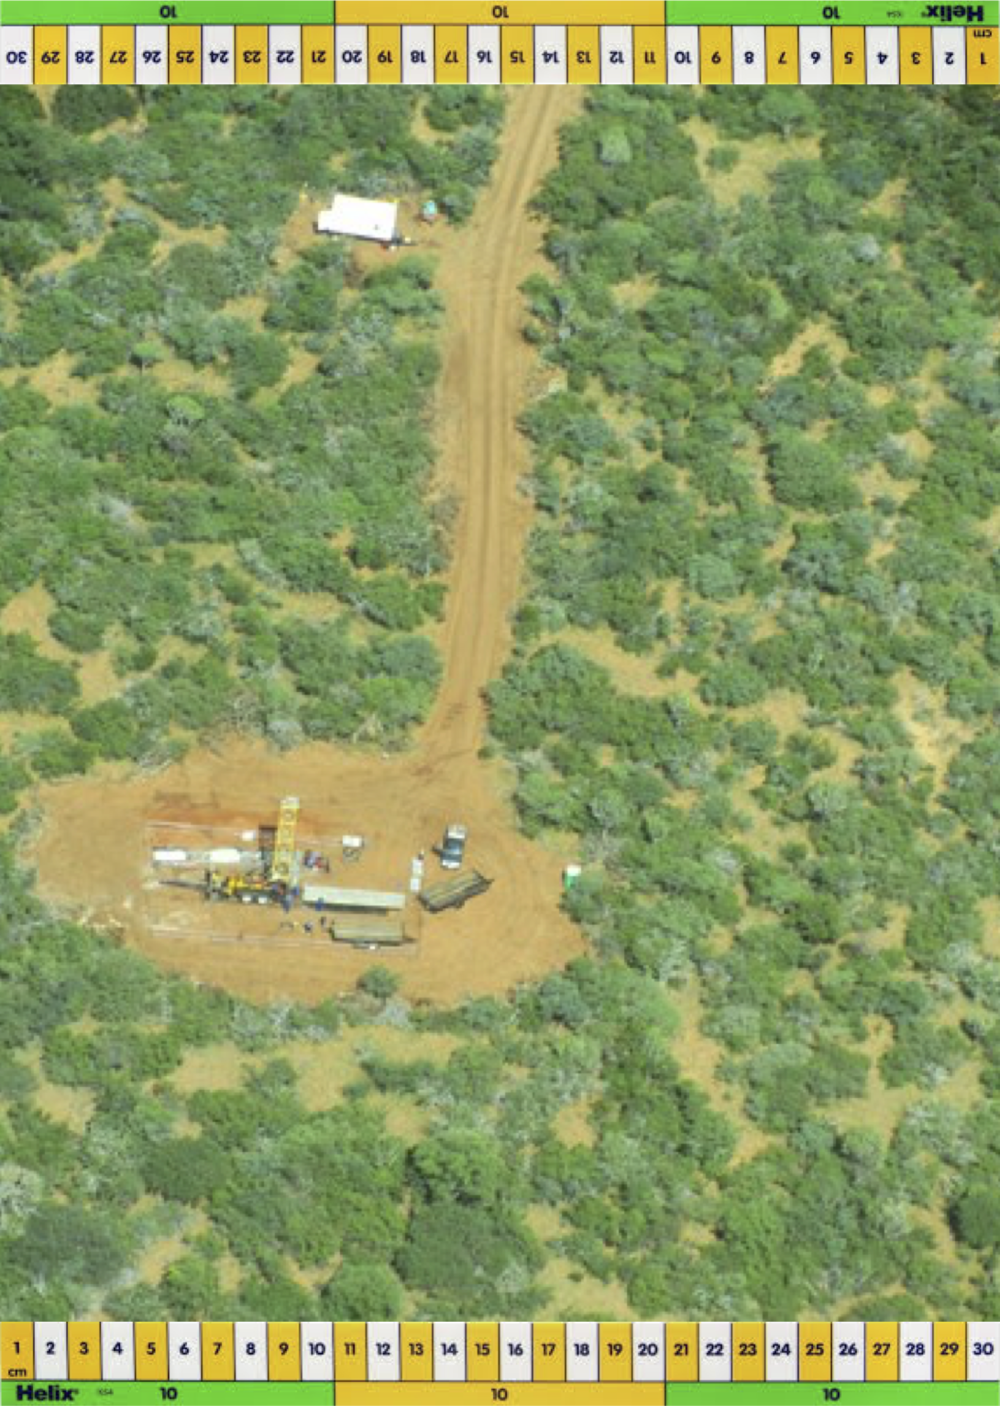 Waterberg in South Africa (photos: Sprott, Platinum Group Metals)